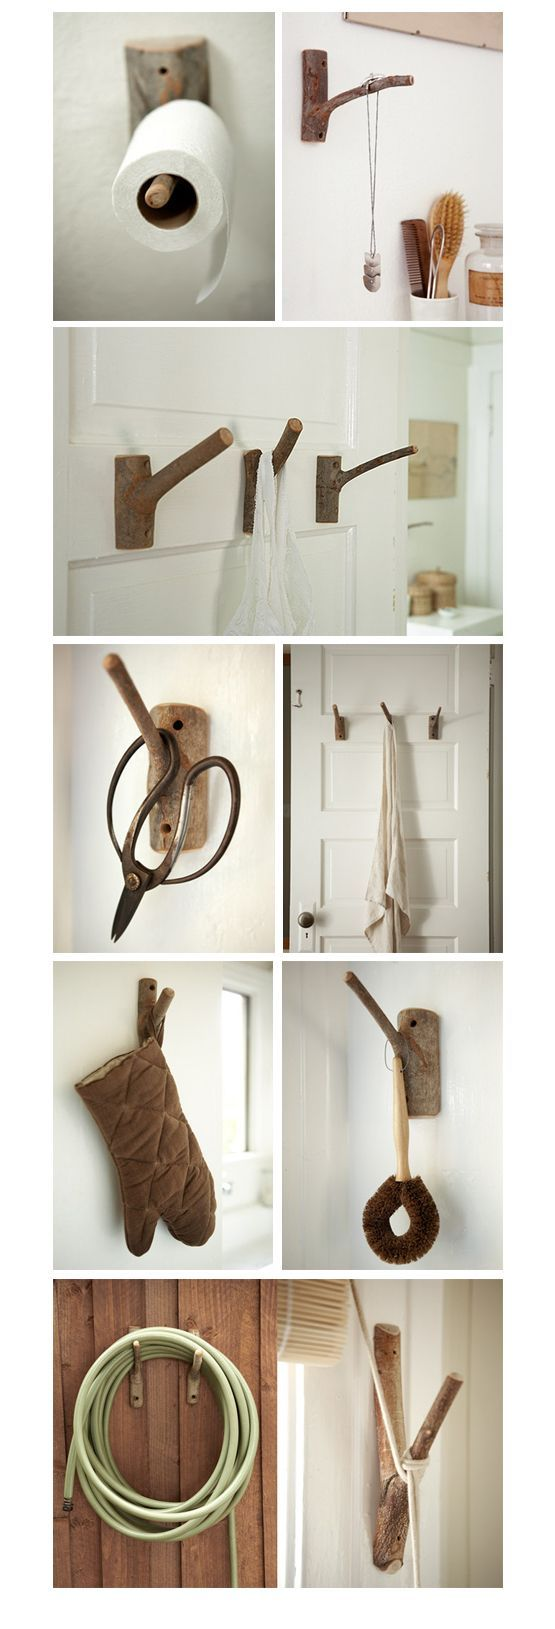 DIY: Branch hooks | Recyclart Very cool branch hooks that could be easily done at home, simply have a trip in a forest next week-end and open your eyes DIY: Branch hooks in wood diy with Wood DIY